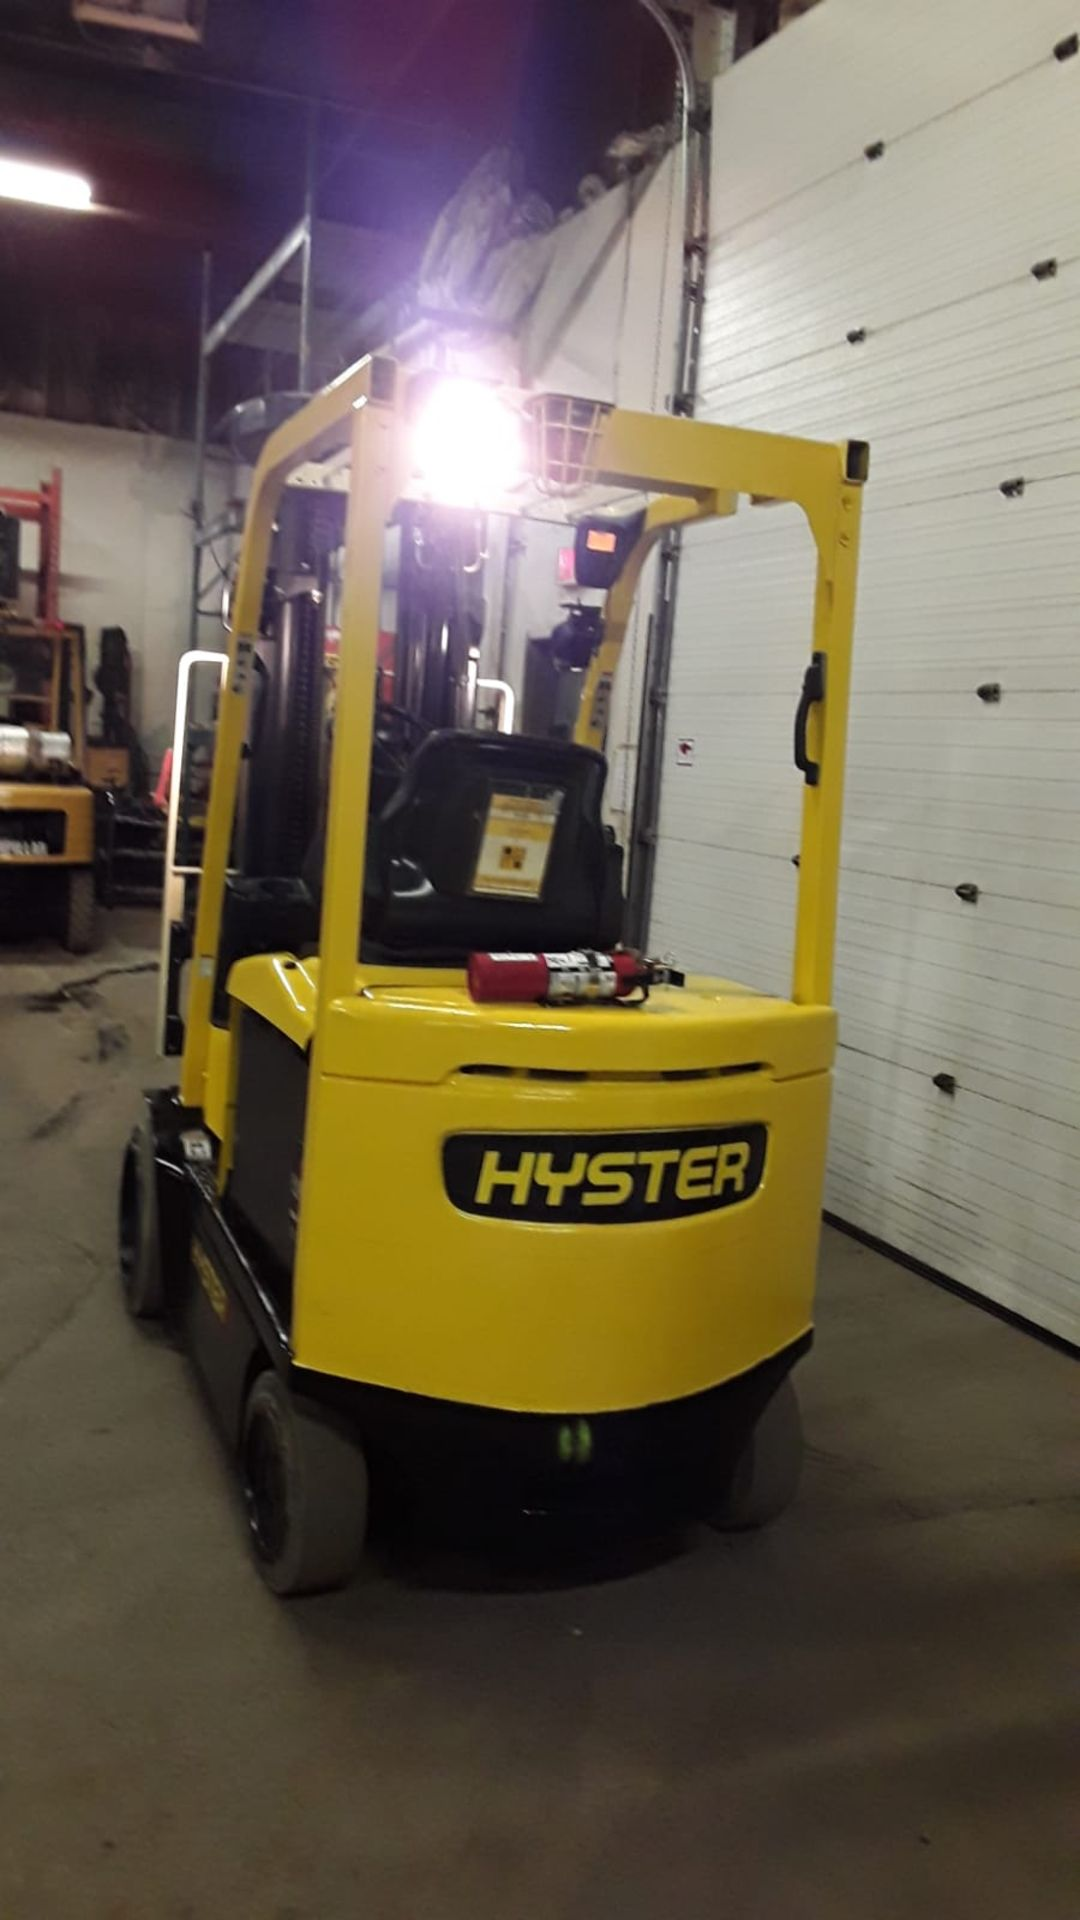 FREE CUSTOMS - 2011 Hyster 5000lbs Capacity Forklift Electric with 4-STAGE MAST with sideshift - Image 3 of 3